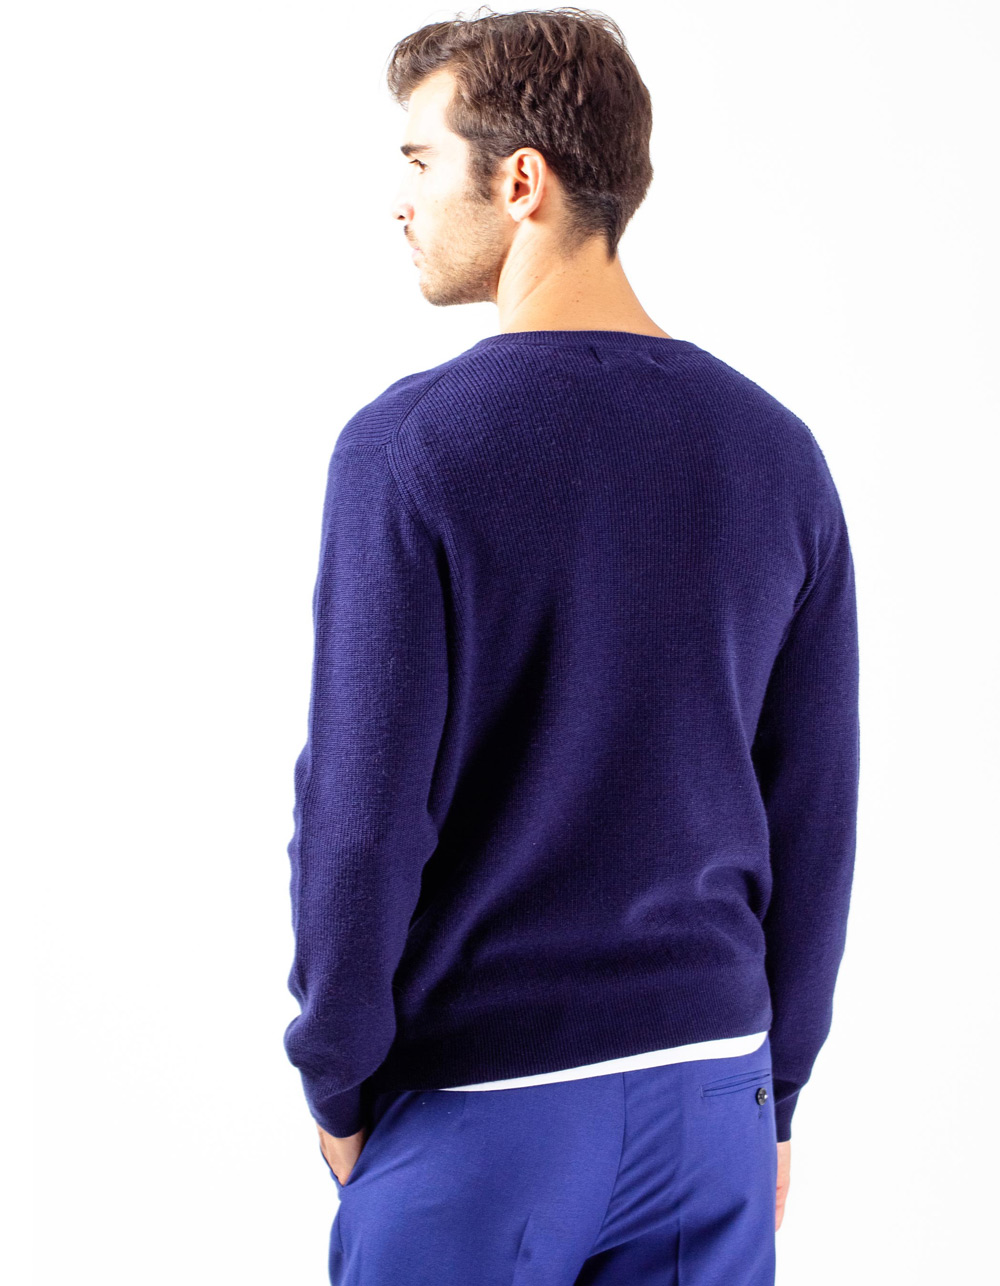 Navy blue sweater with buttons - Backside